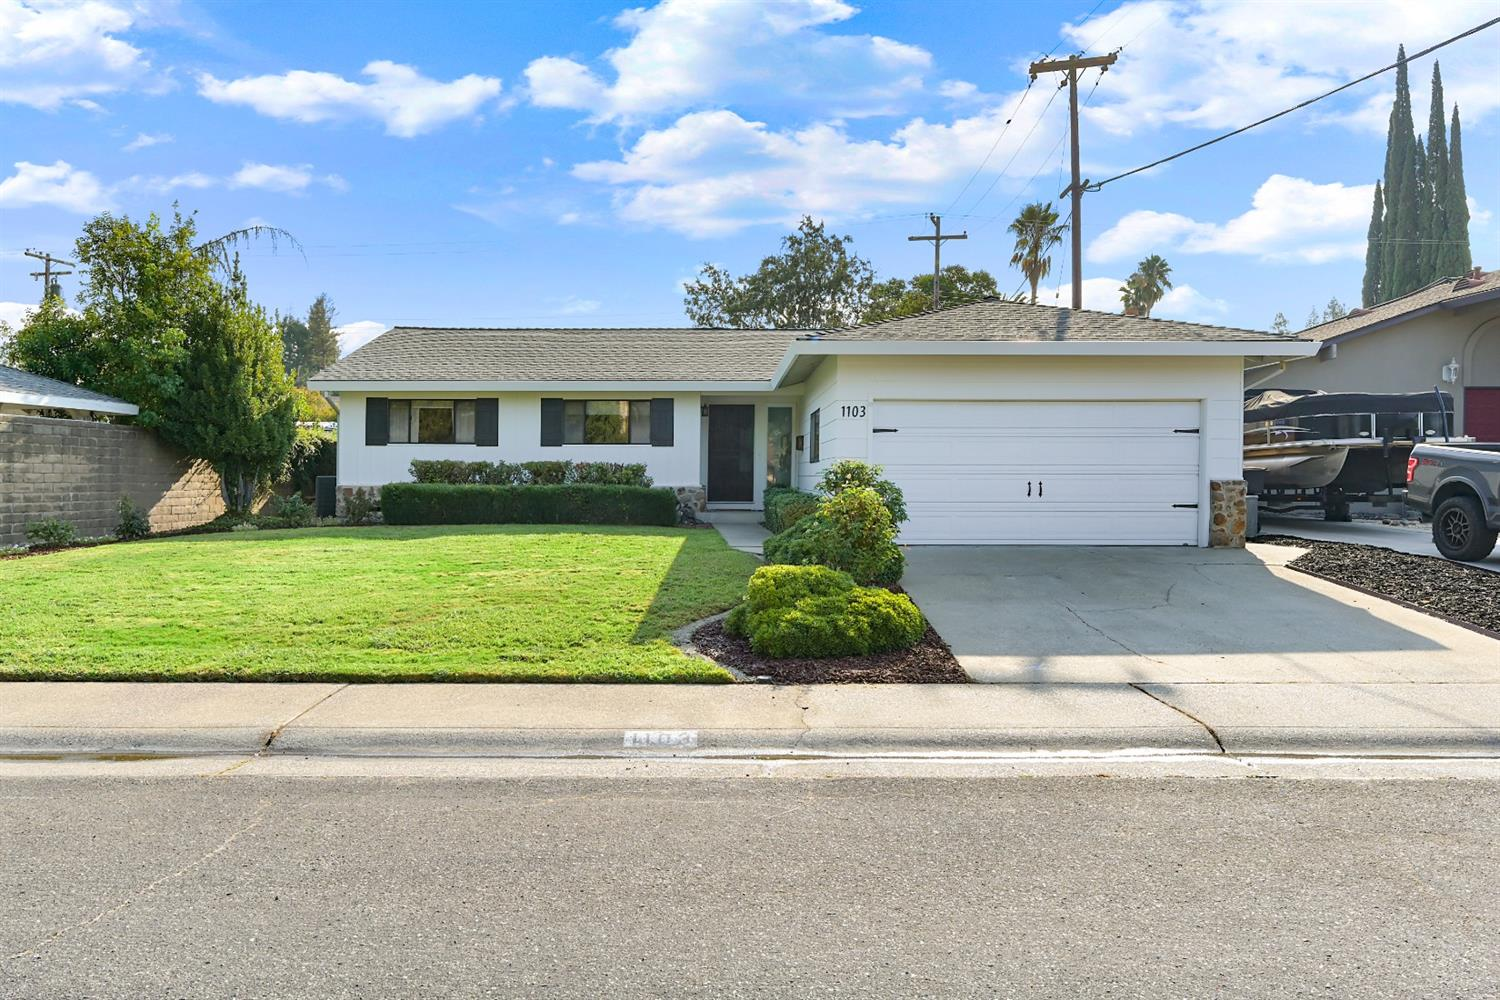 Photo 2 for Listing #221107222